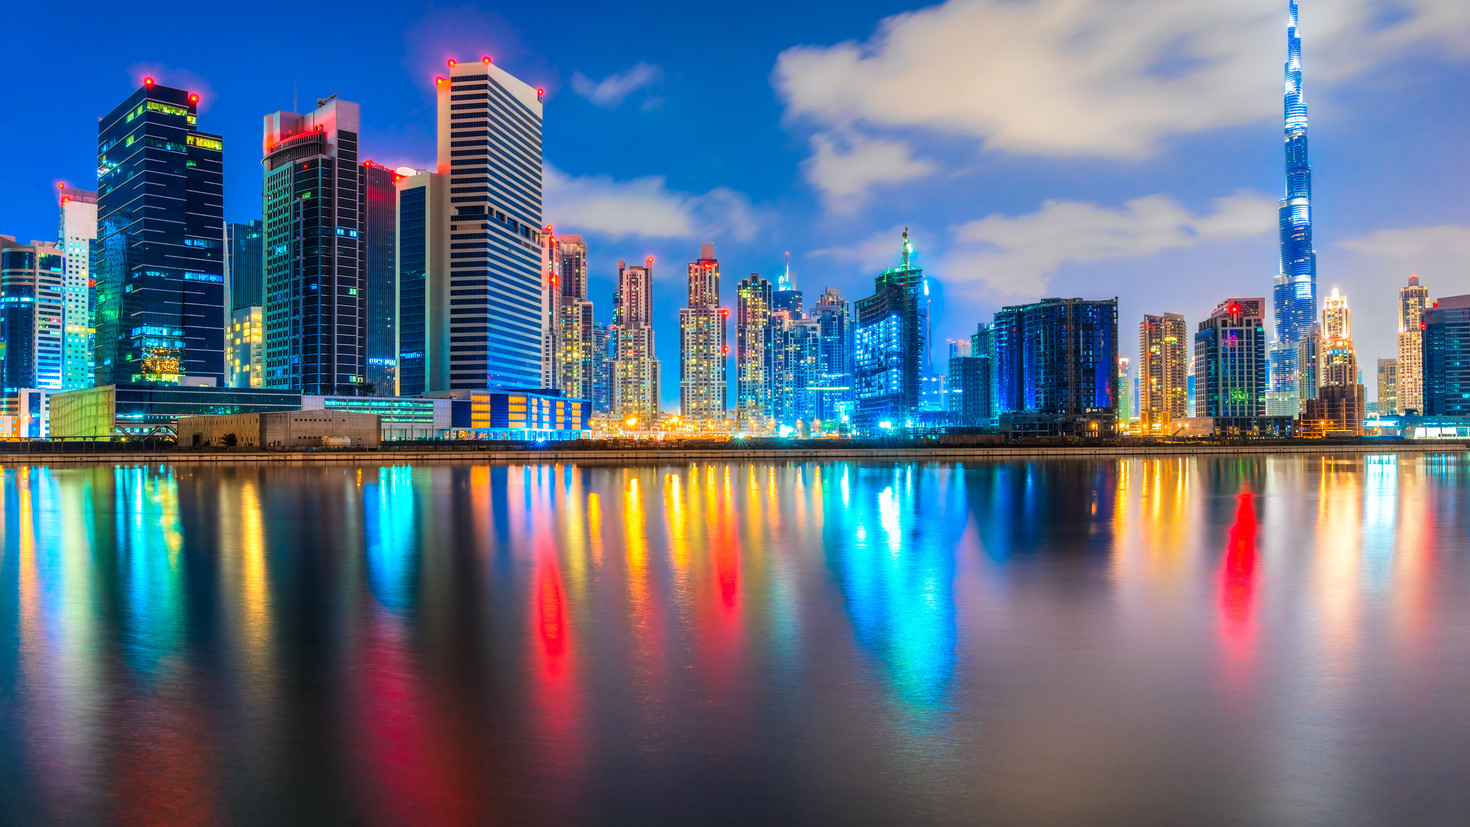 Creating Global Content to Conquer the MENA Market